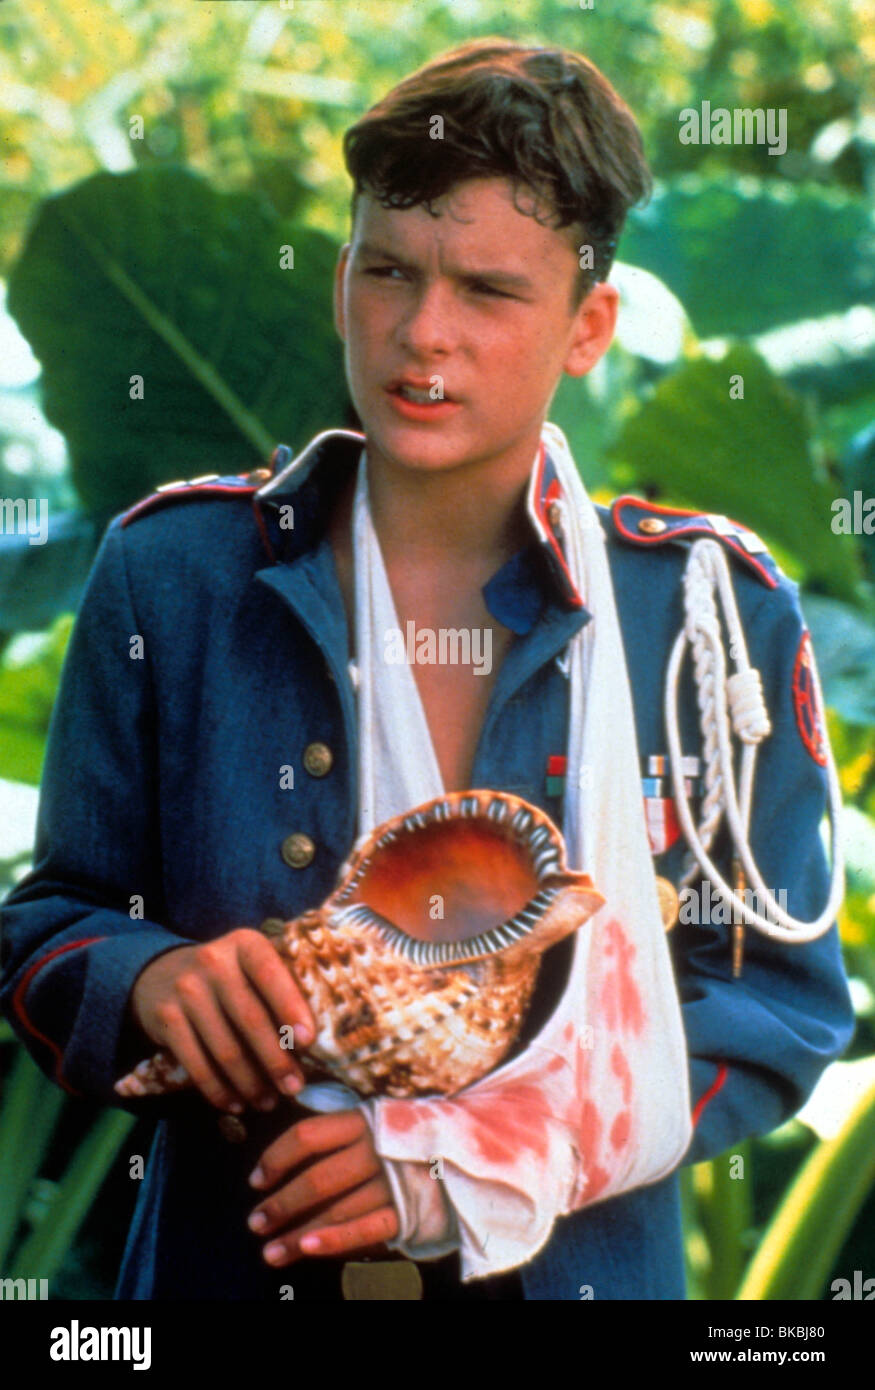 LORD OF THE FLIES (1990) BALTHAZAR GETTY LOF 008 - Stock Image